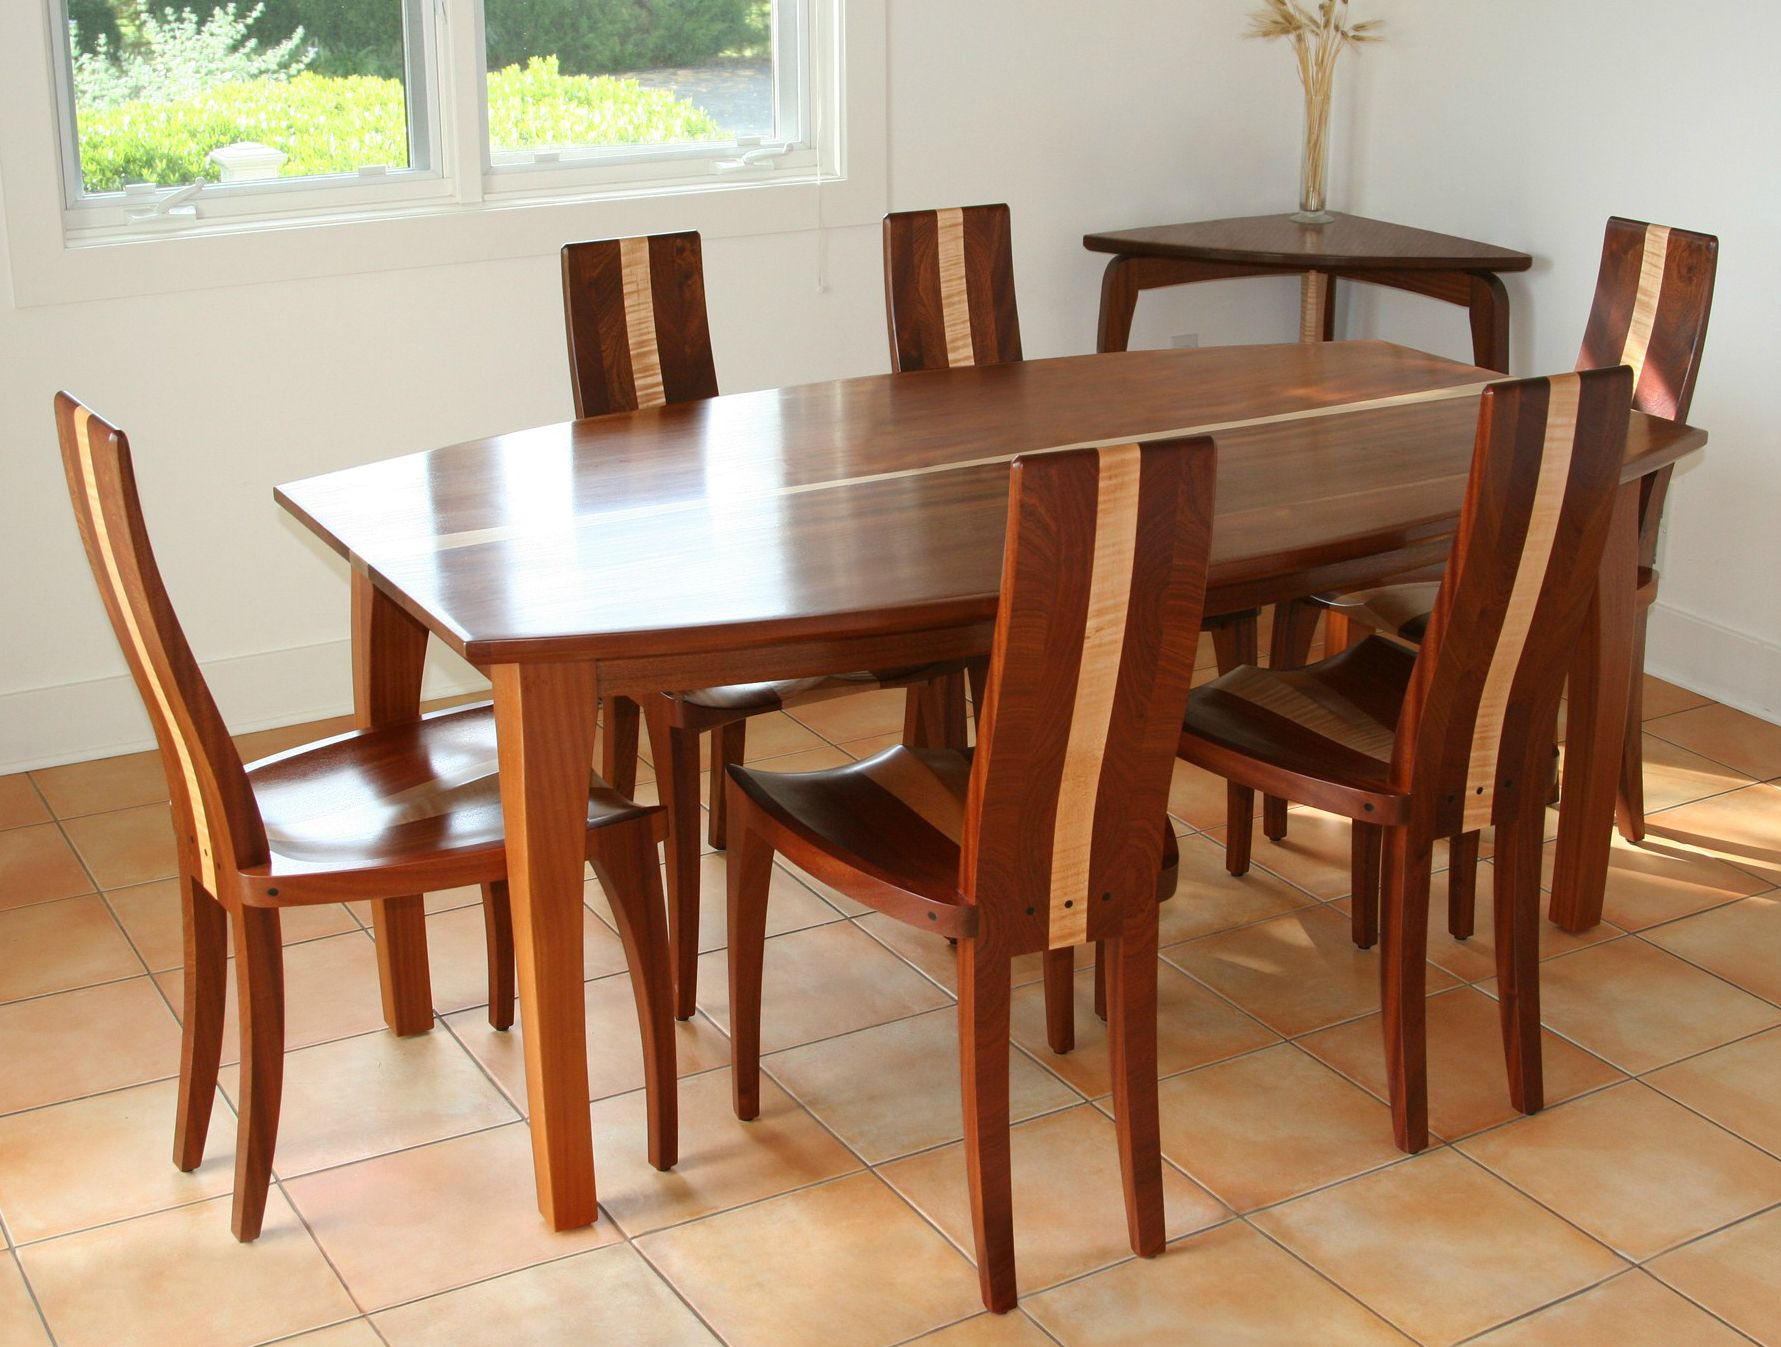 Buy a Hand Made Modern Wood Dining Table Solid Mahogany